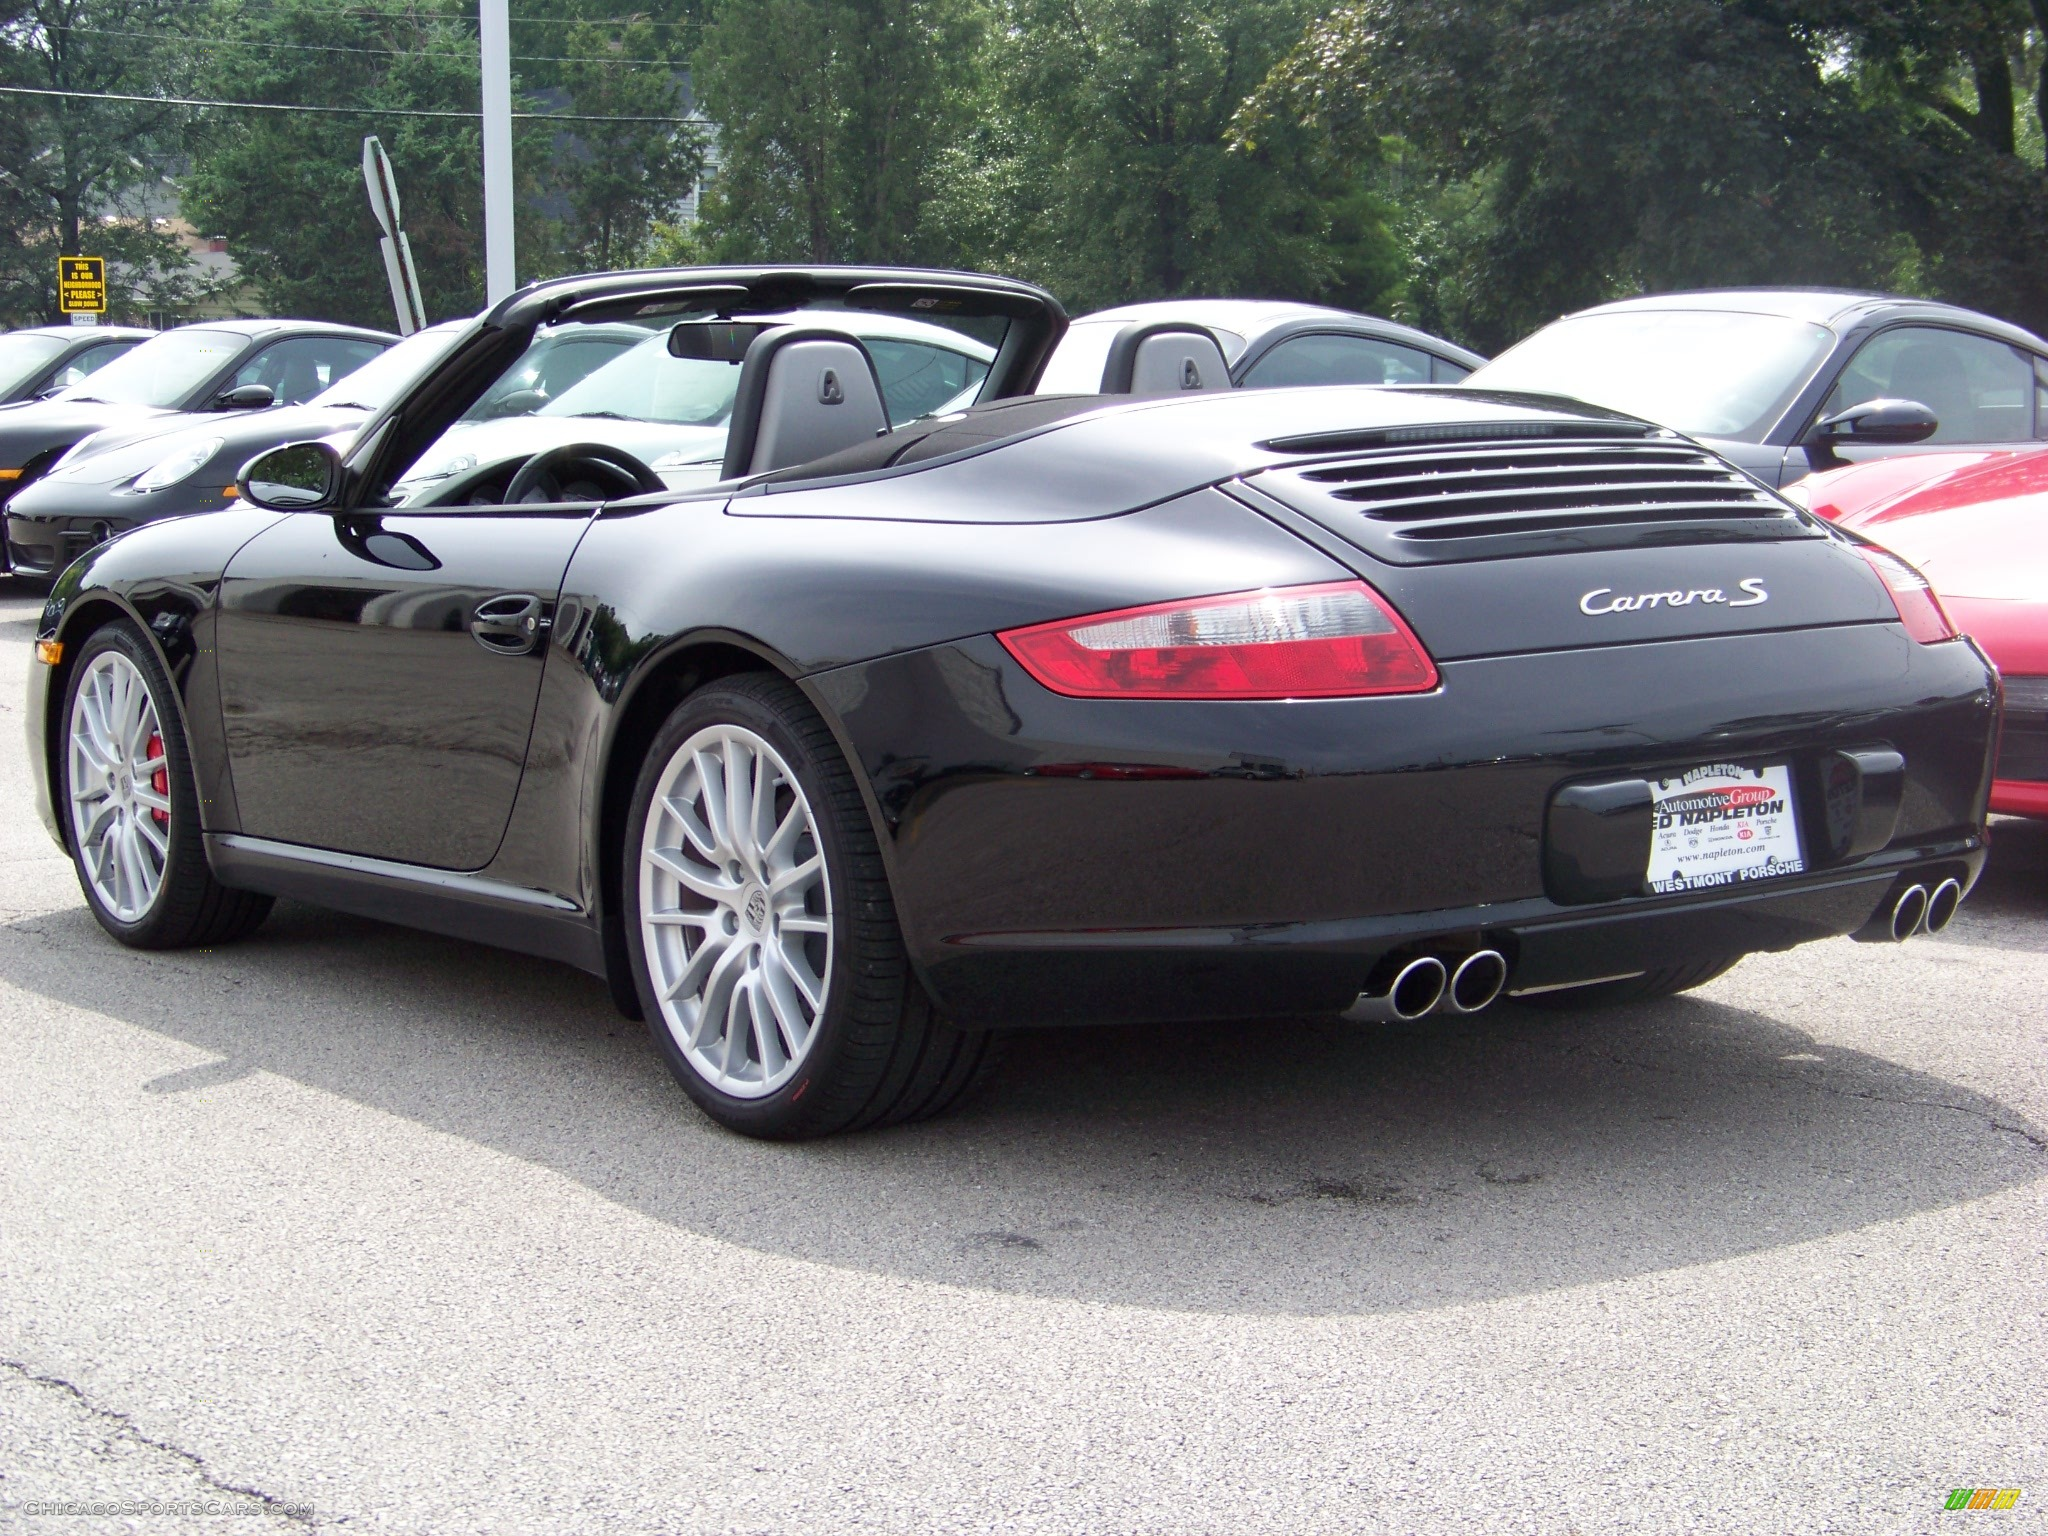 2008 porsche 911 carrera s cabriolet in black photo 28 775338 cars. Black Bedroom Furniture Sets. Home Design Ideas